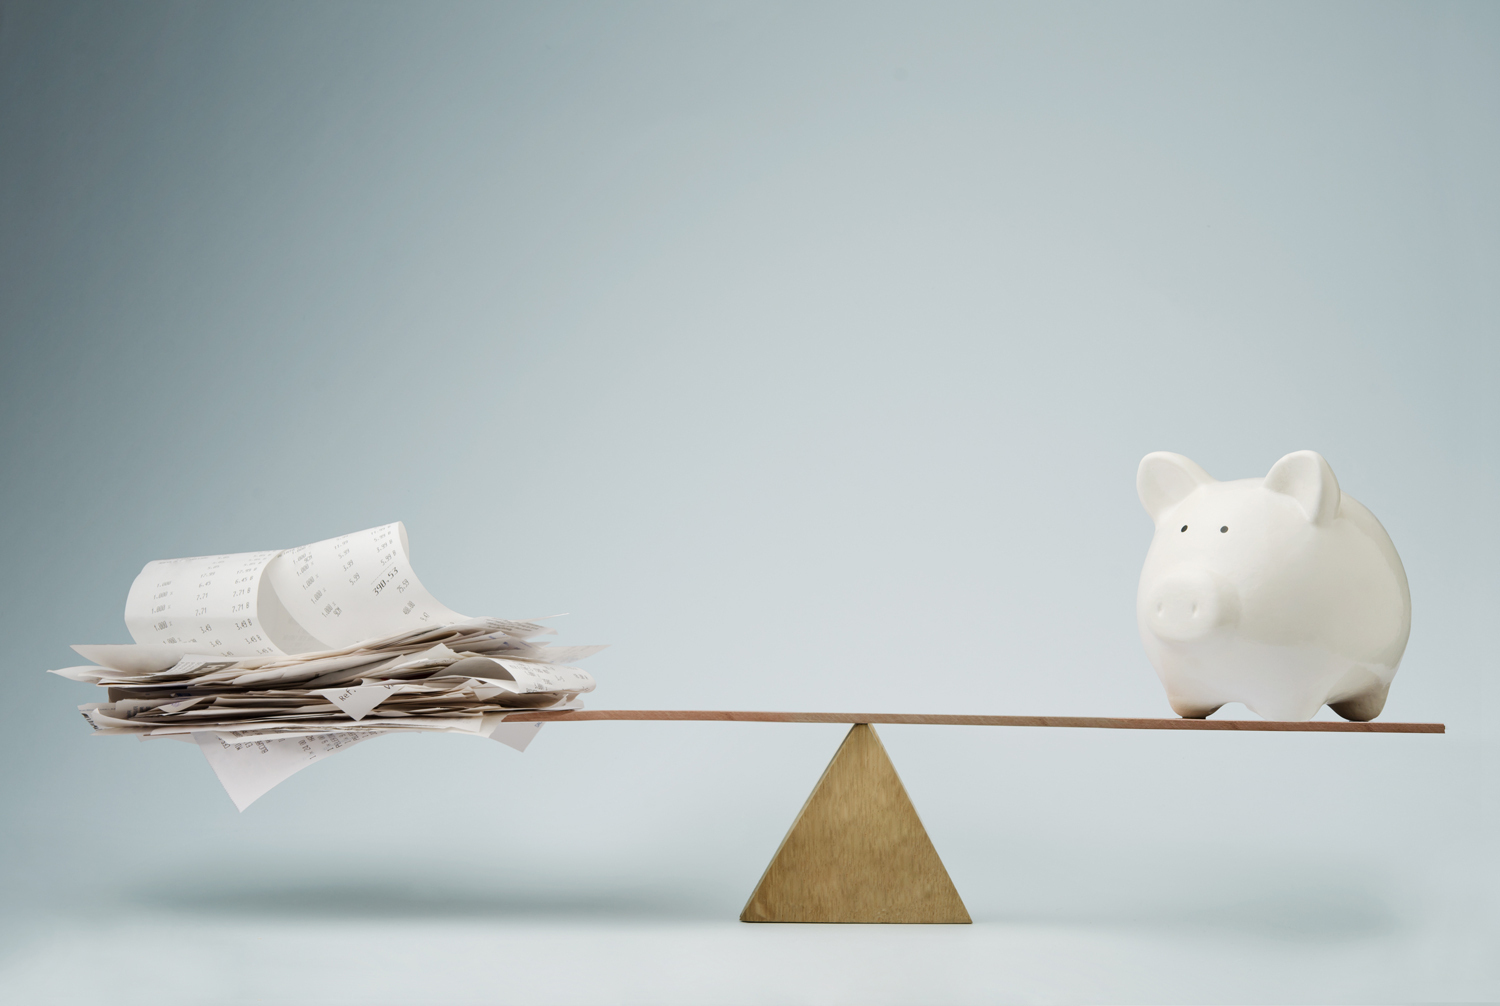 Financial resilience for business